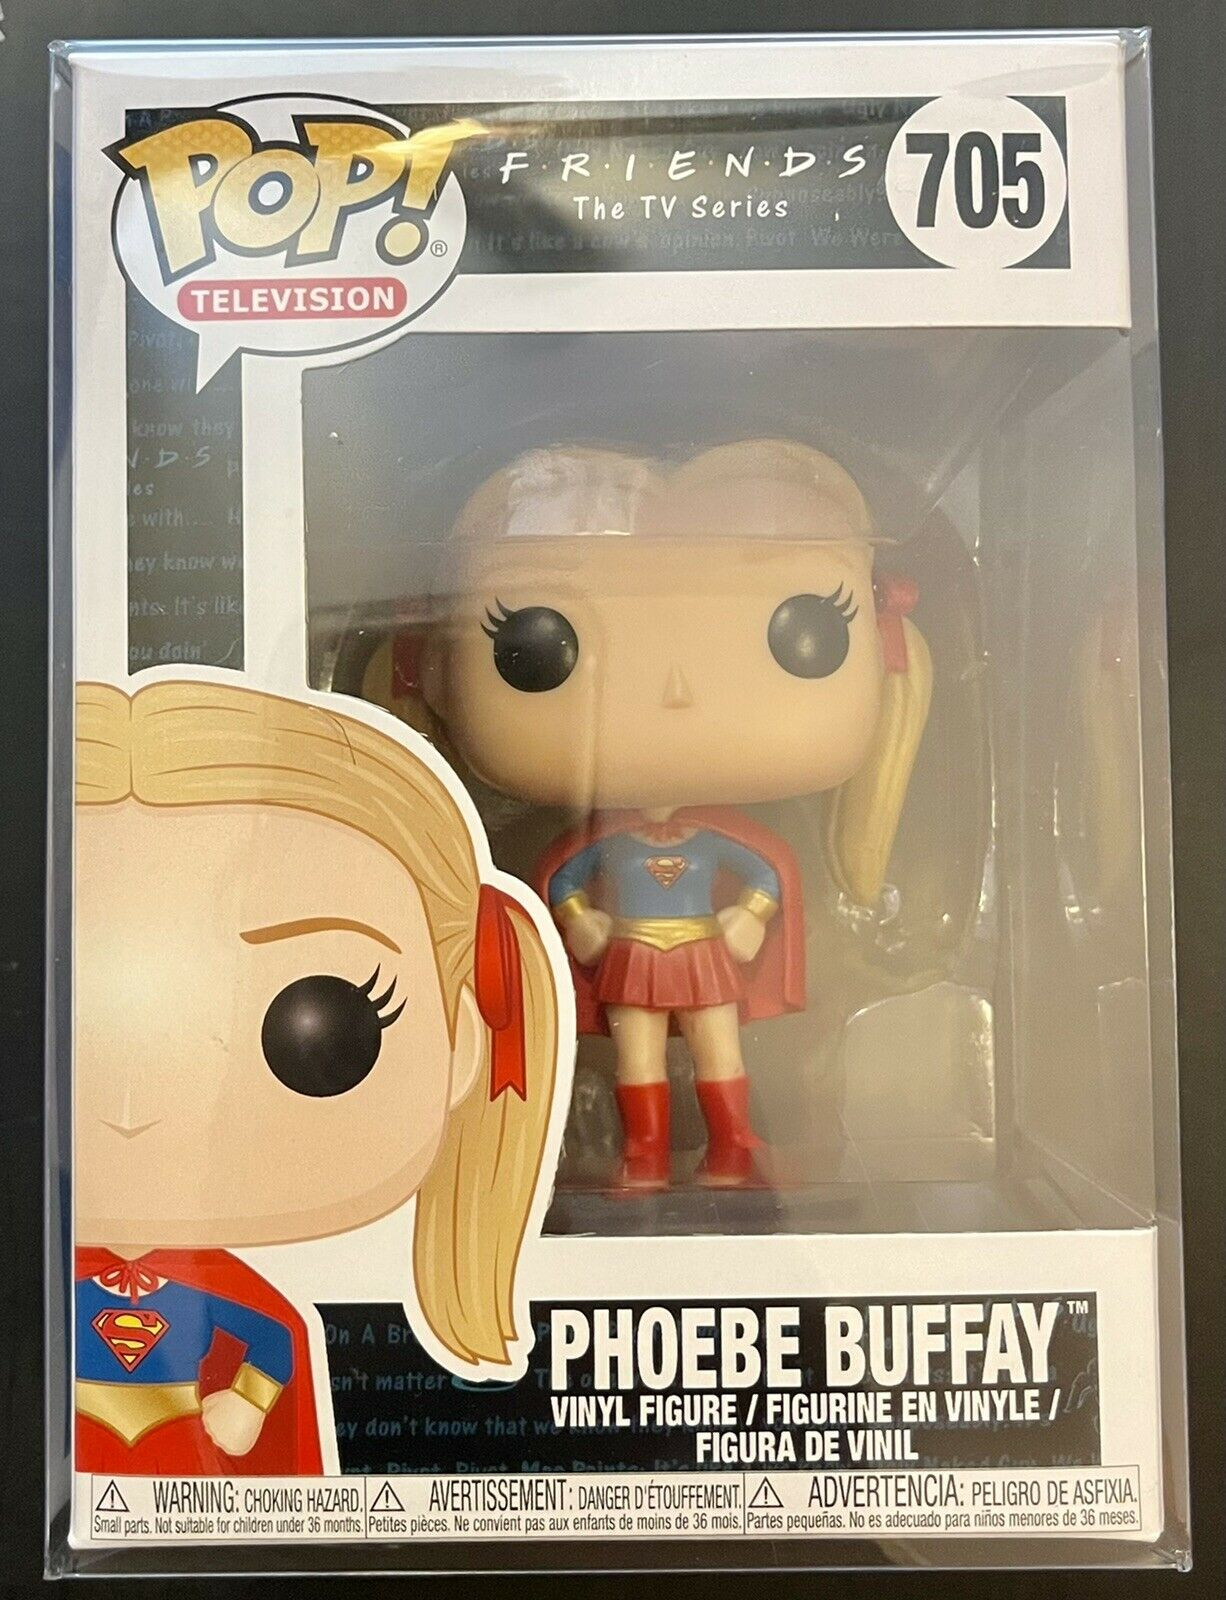 Funko Pop! Television Friends Phoebe Buffay #705 Vinyl Figure With Protector